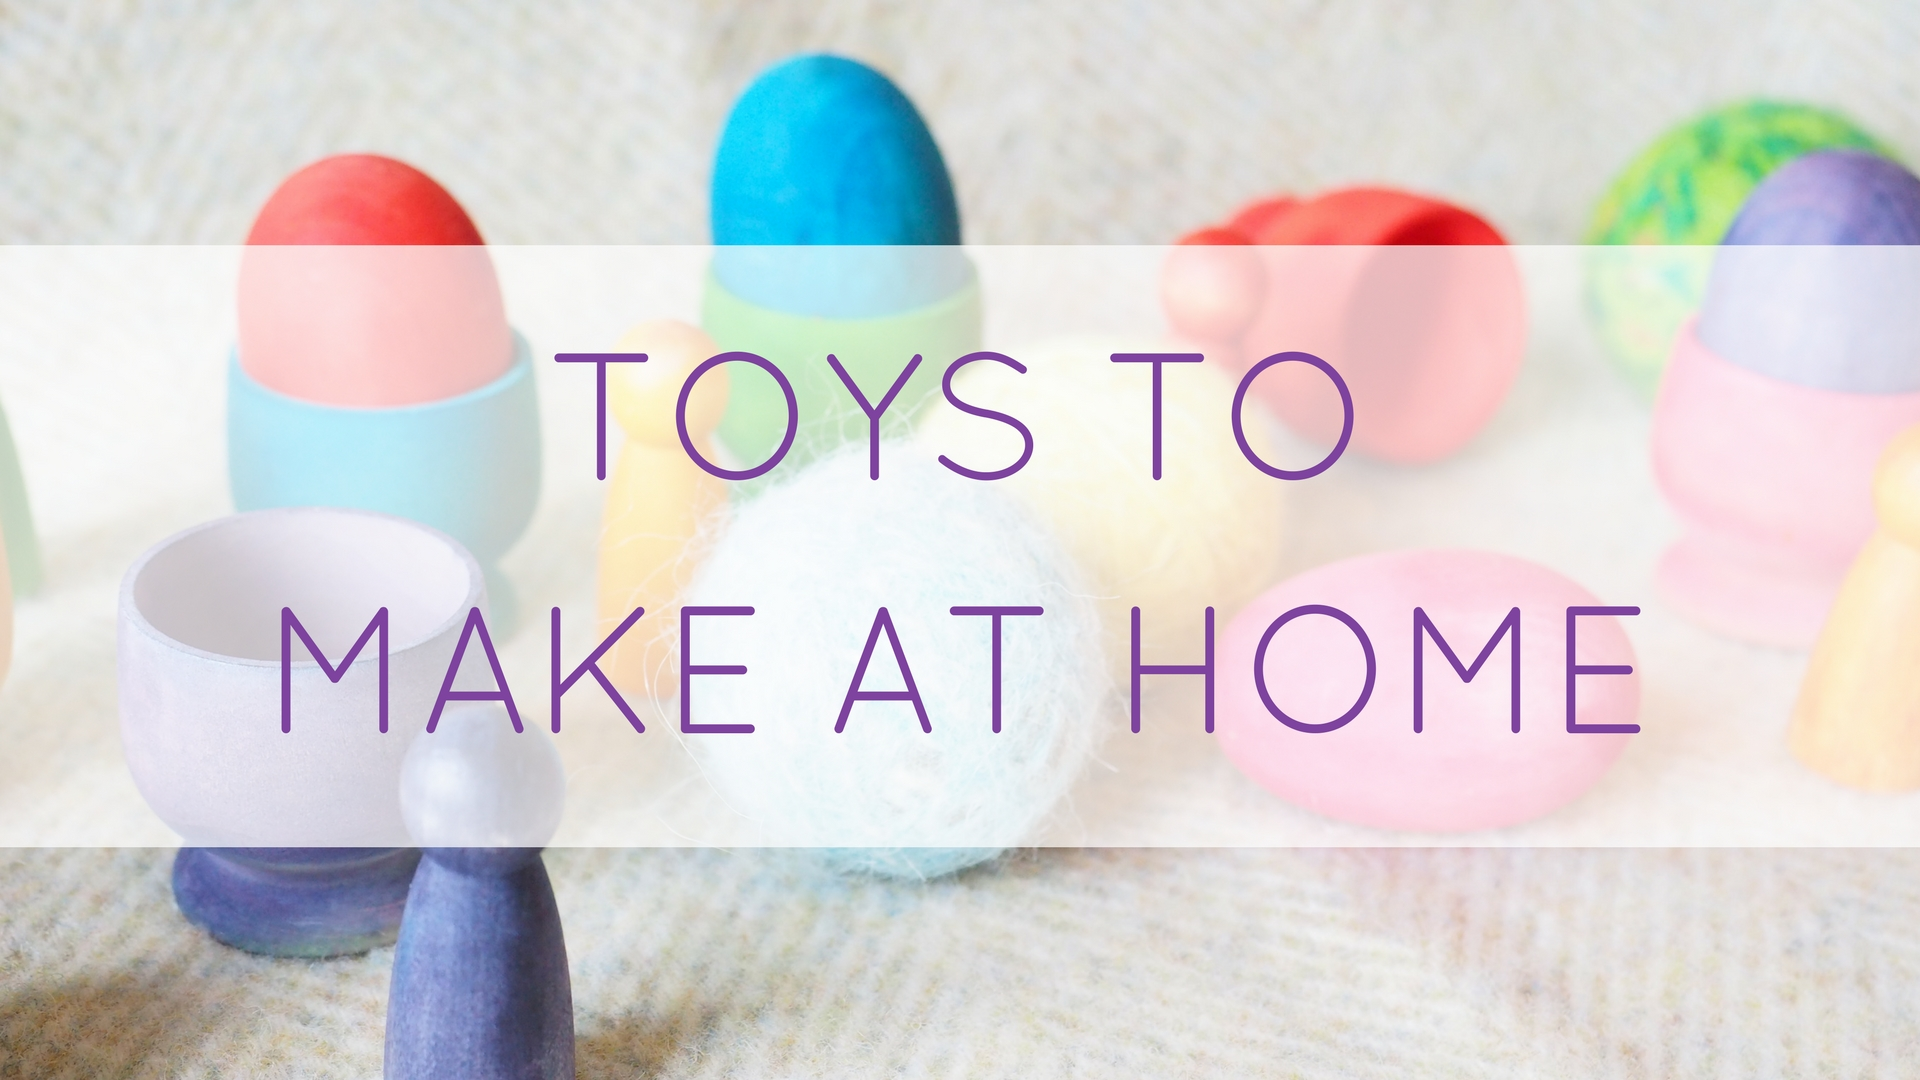 Toys to Make at Home.jpg